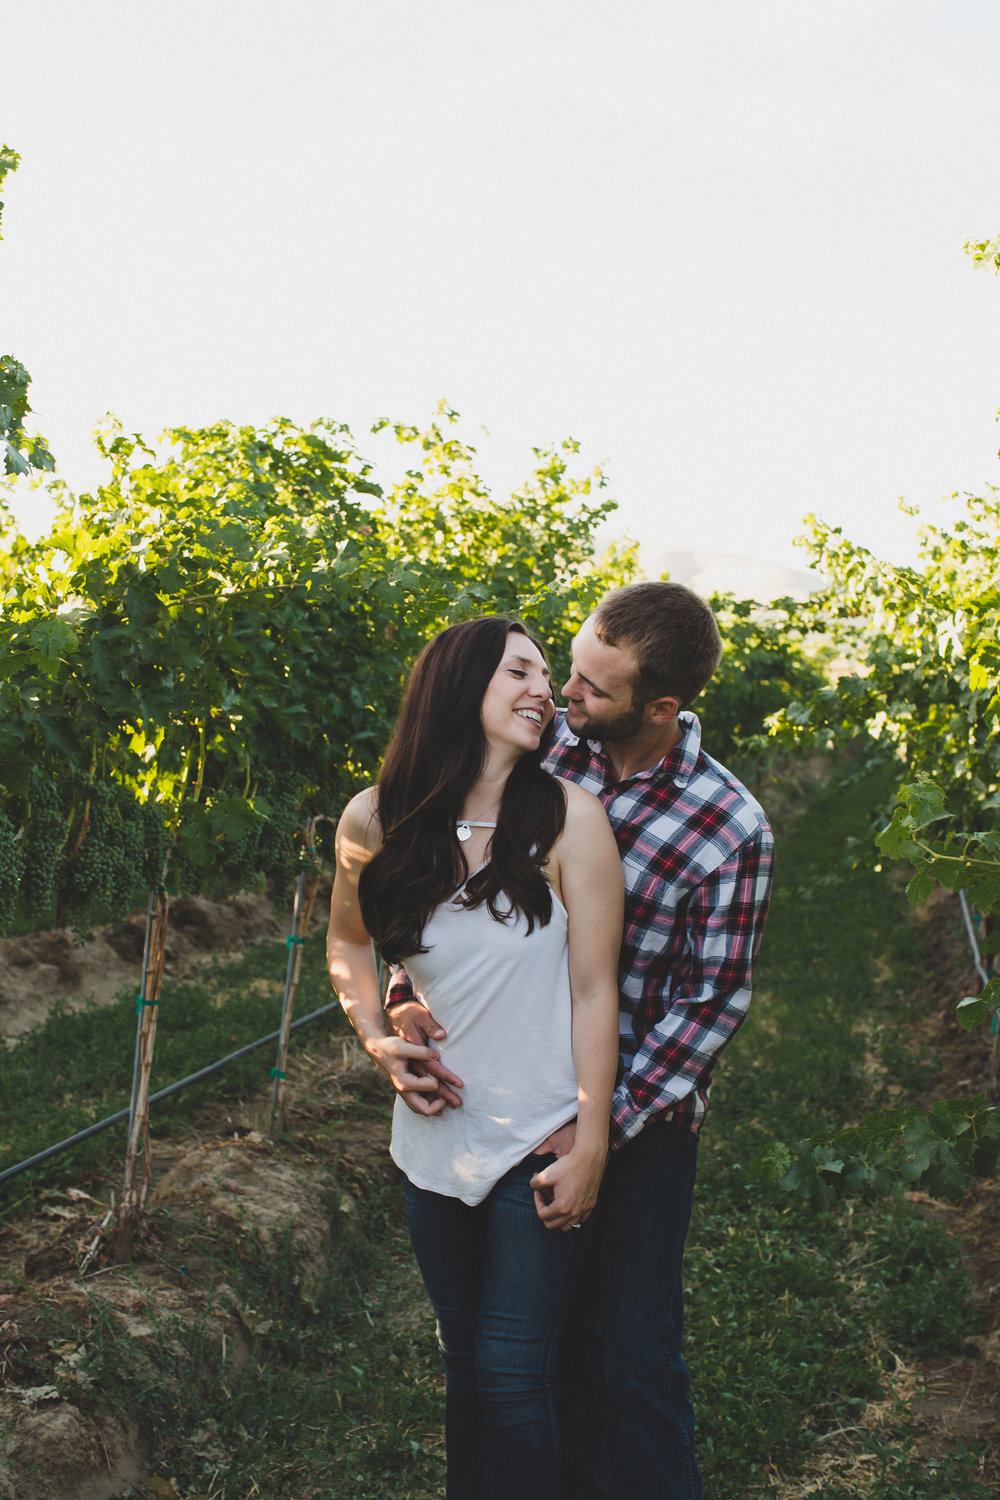 Tri Cities sunset engagement session_desert engagement_Vineyard engagement_Jordyn and Drew_Jordan Edens Photography_JEP_Grape vines_13